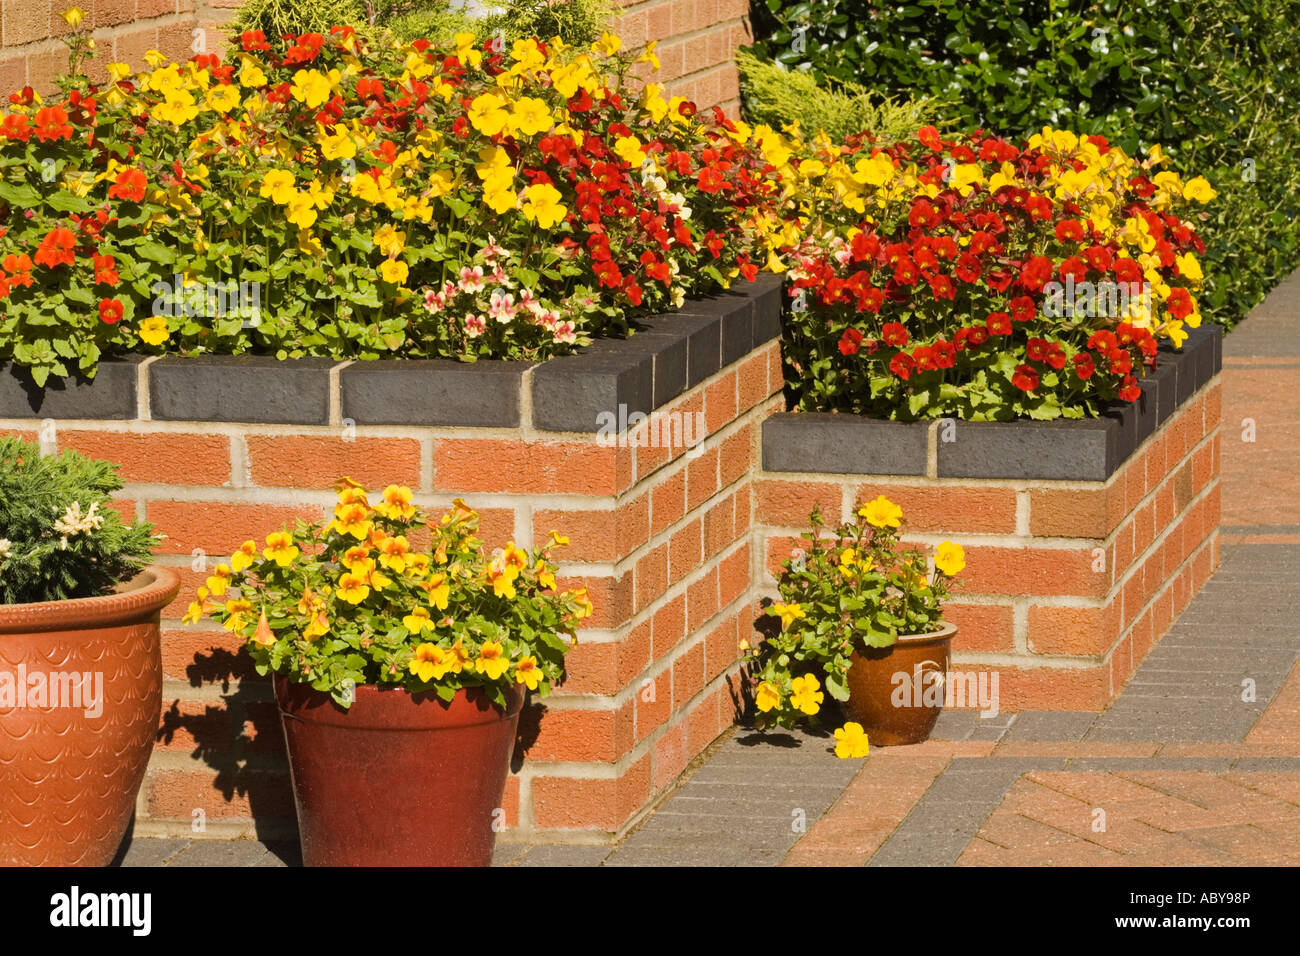 A raised flower bed with pots on a patio in a garden - Stock Image